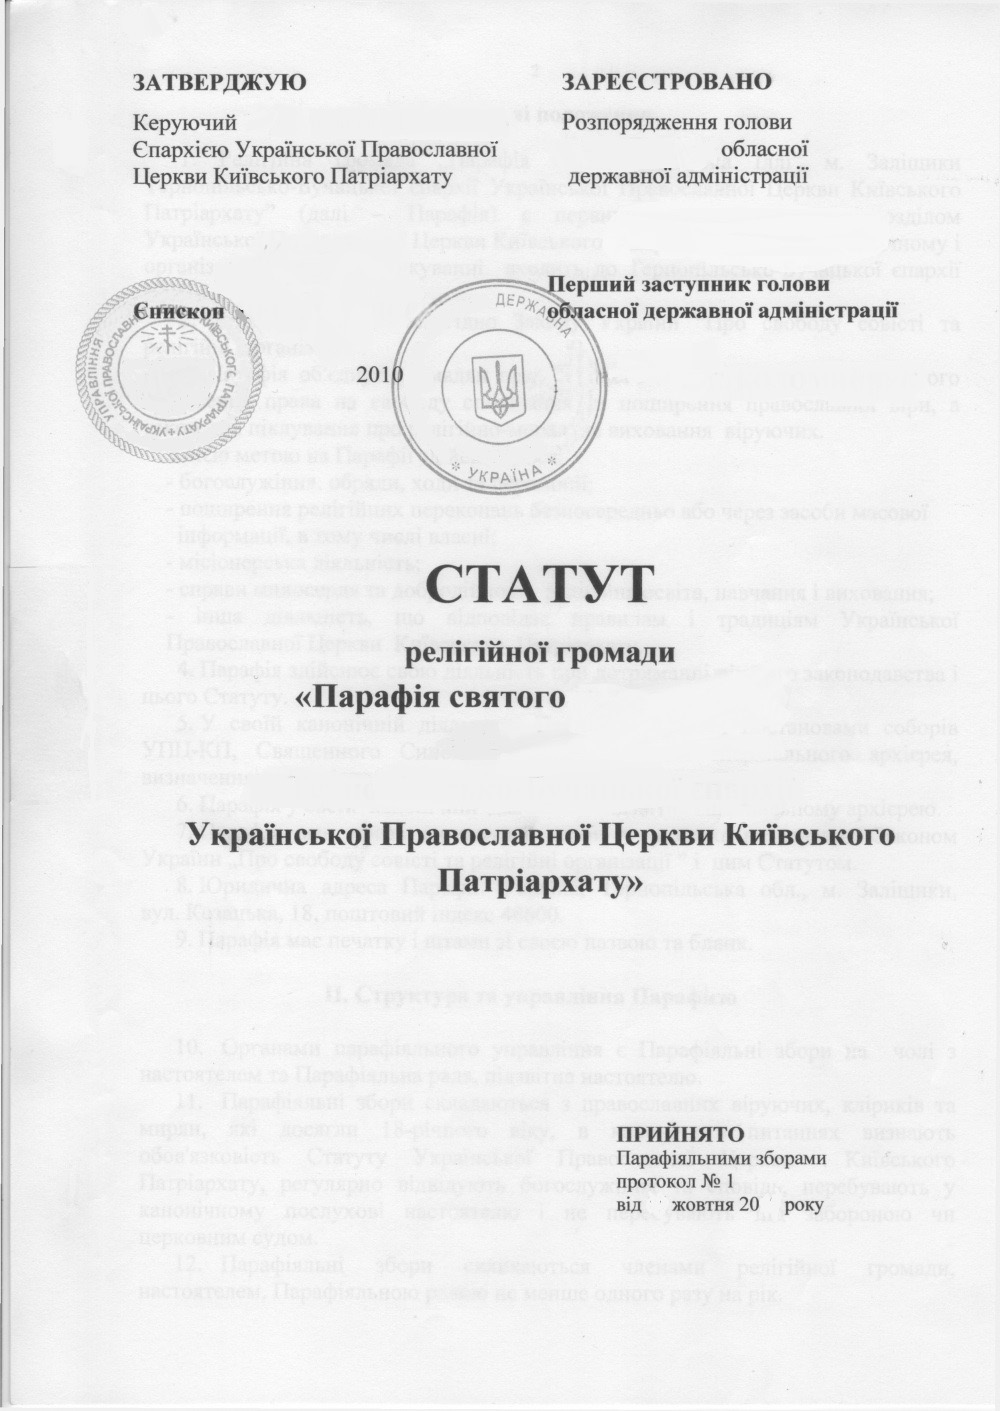 Registration of a religious organization in Ukraine